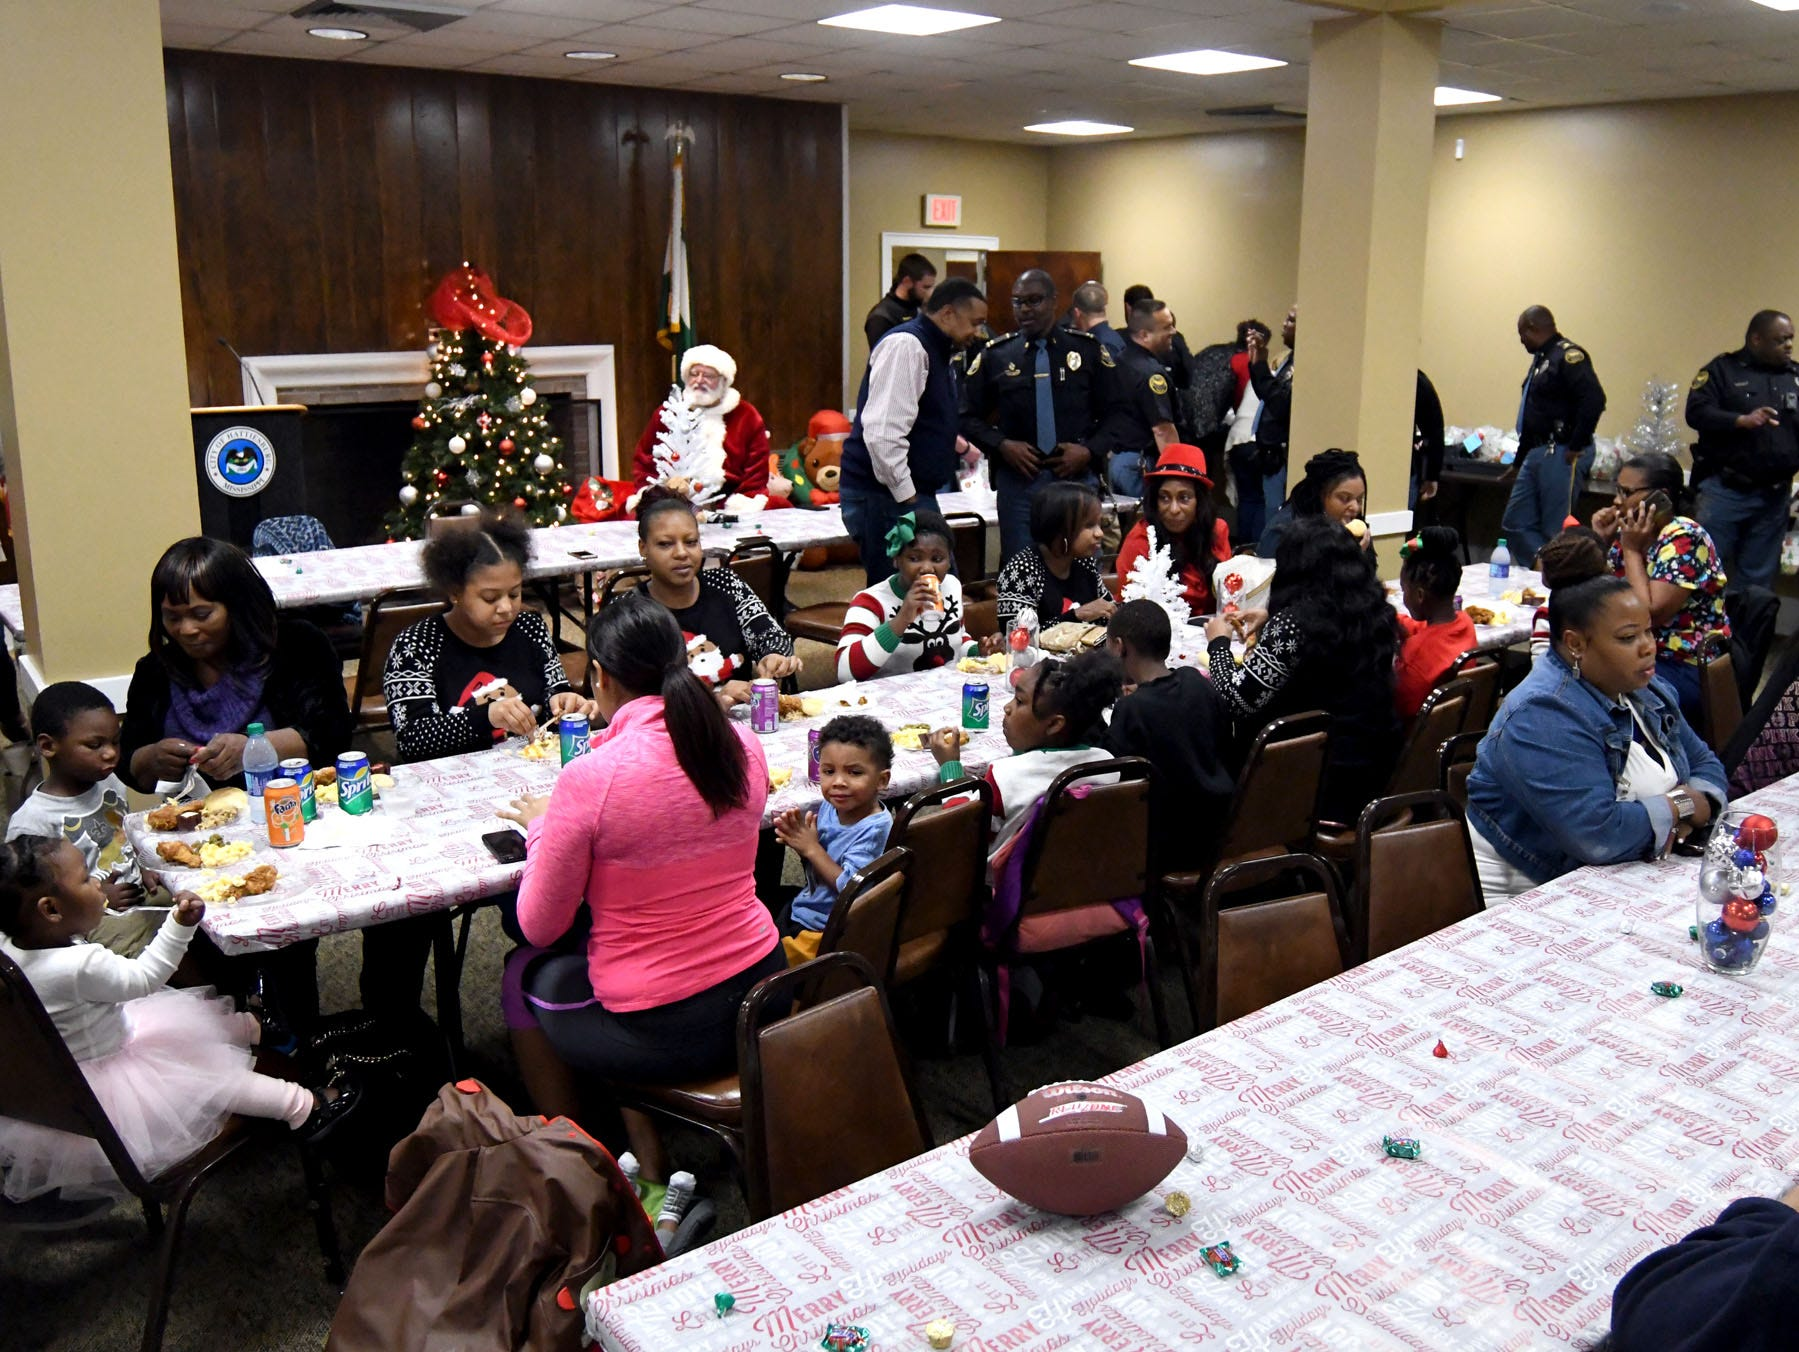 The Hattiesburg Police Department host their Victim Service UnitÕs Hearts of Hope Christmas party for victims affected by violent crimes at Jackie Sherrill Community Center on Thursday, December 20, 2018.